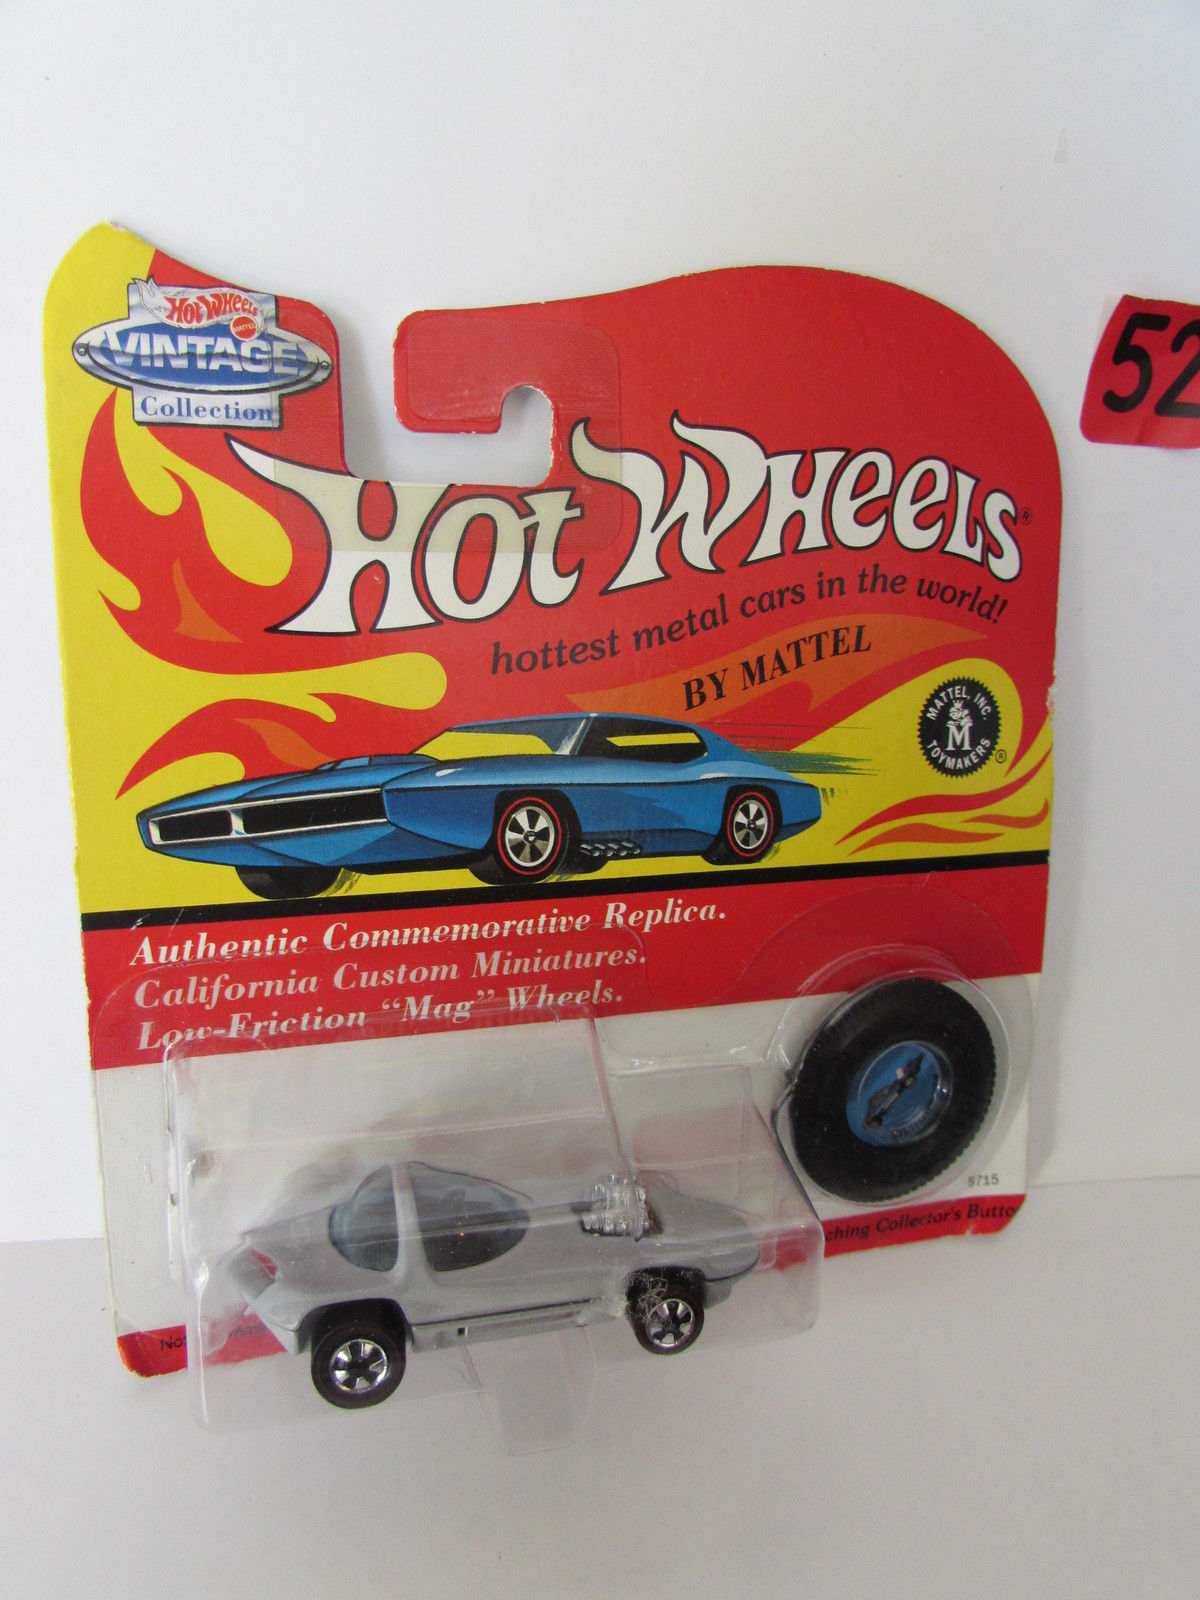 HOT WHEELS 1993 VINTAGE COLLECTION SILHOUETTE W/ BUTTON